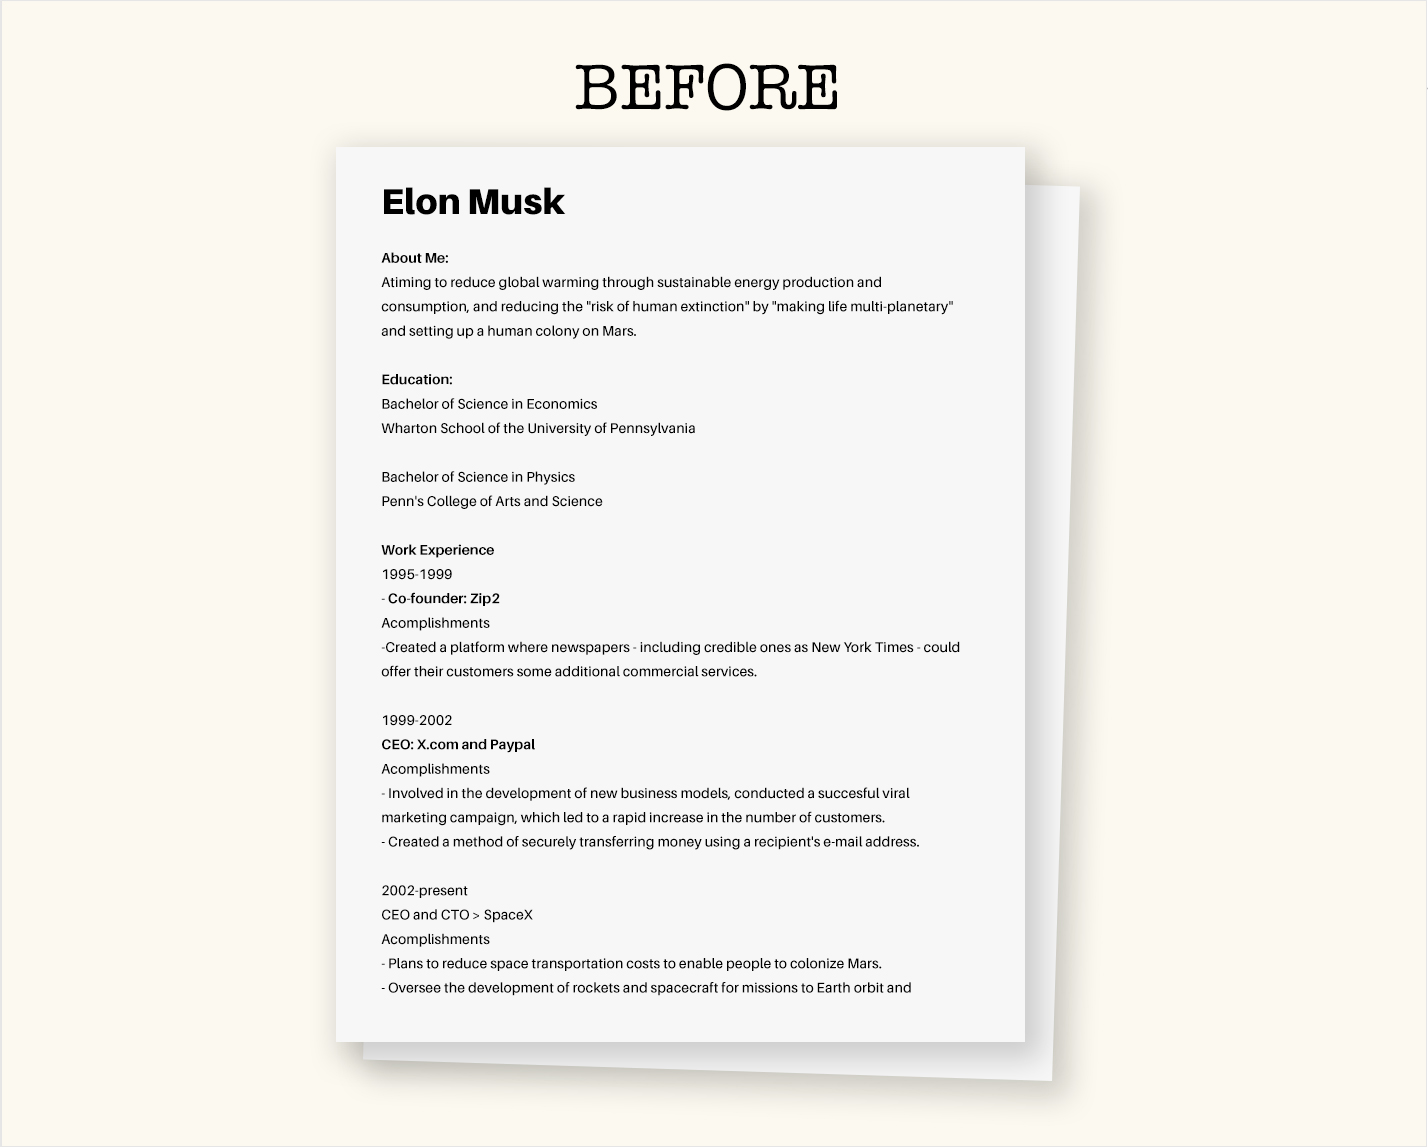 elon musk resume before